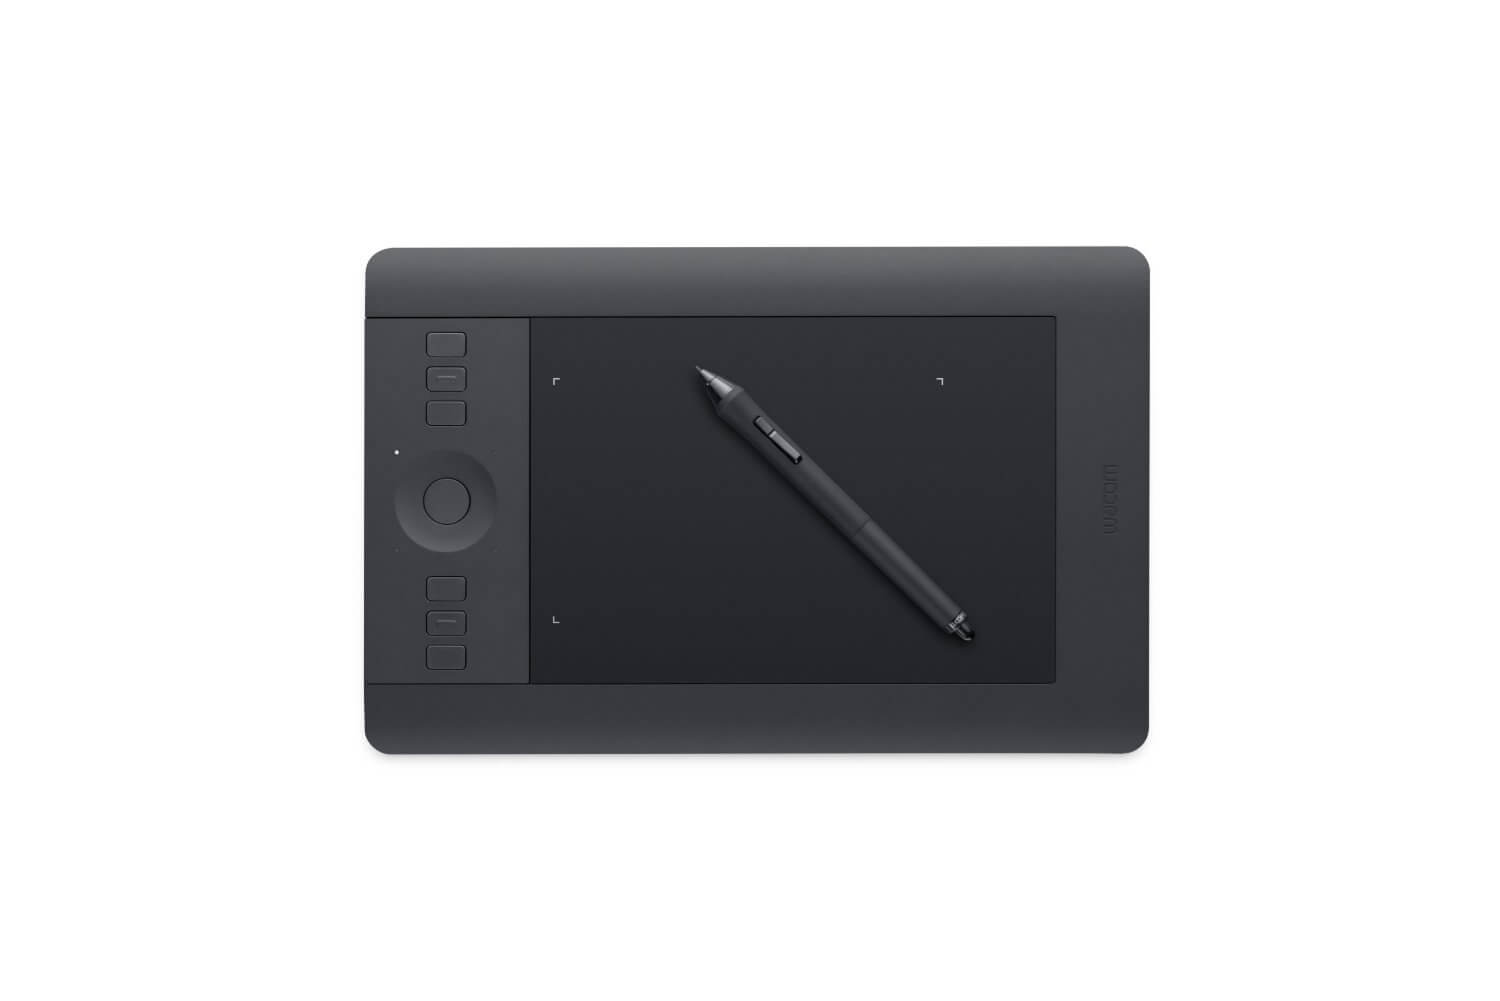 Wacom Intuos Pro Pen and Touch Small Tablet For Drawing